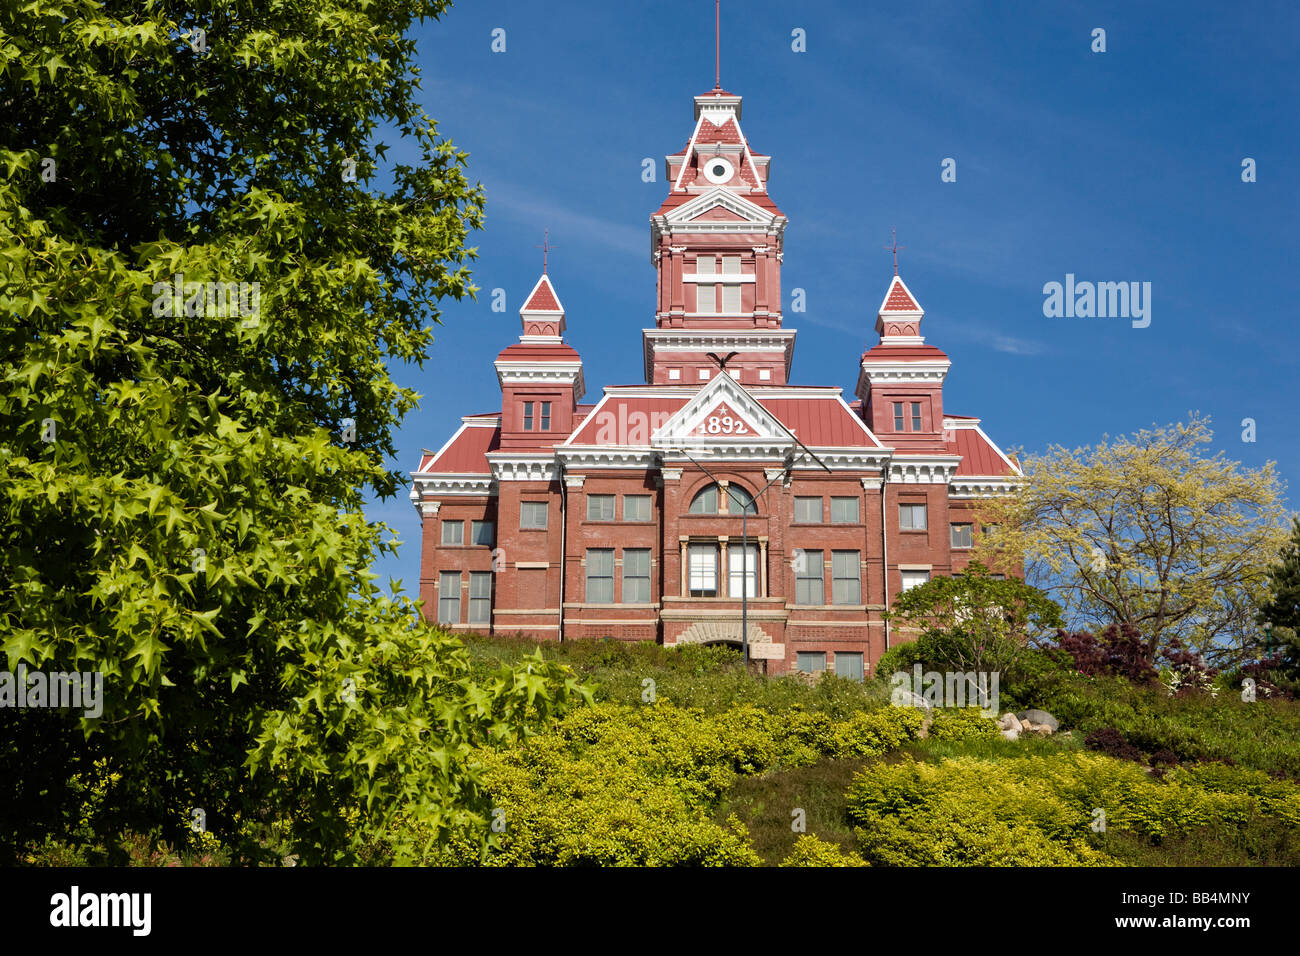 Whatcom Museum of History & Art on Prospect Street housed in a beautiful 1890s era courthouse, in Bellingham Stock Photo